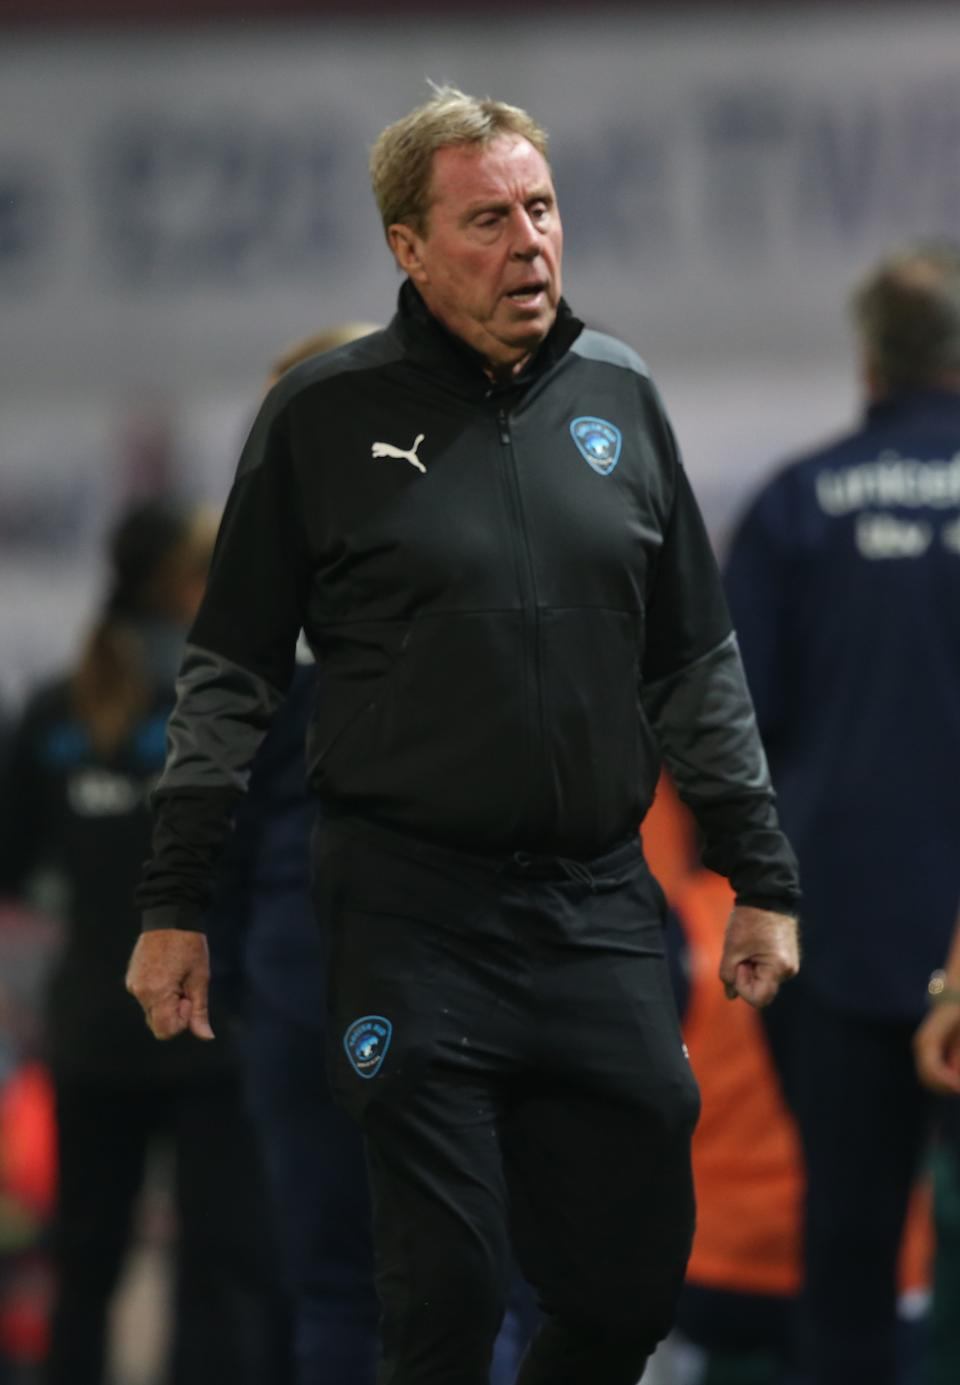 Harry Redknapp of Rest of the World walks out for the second half during the Soccer Aid for Unicef 2020 match between England and Rest of the World at Old Trafford on September 06, 2020 in Manchester, England. (Photo by John Peters/Manchester United via Getty Images)